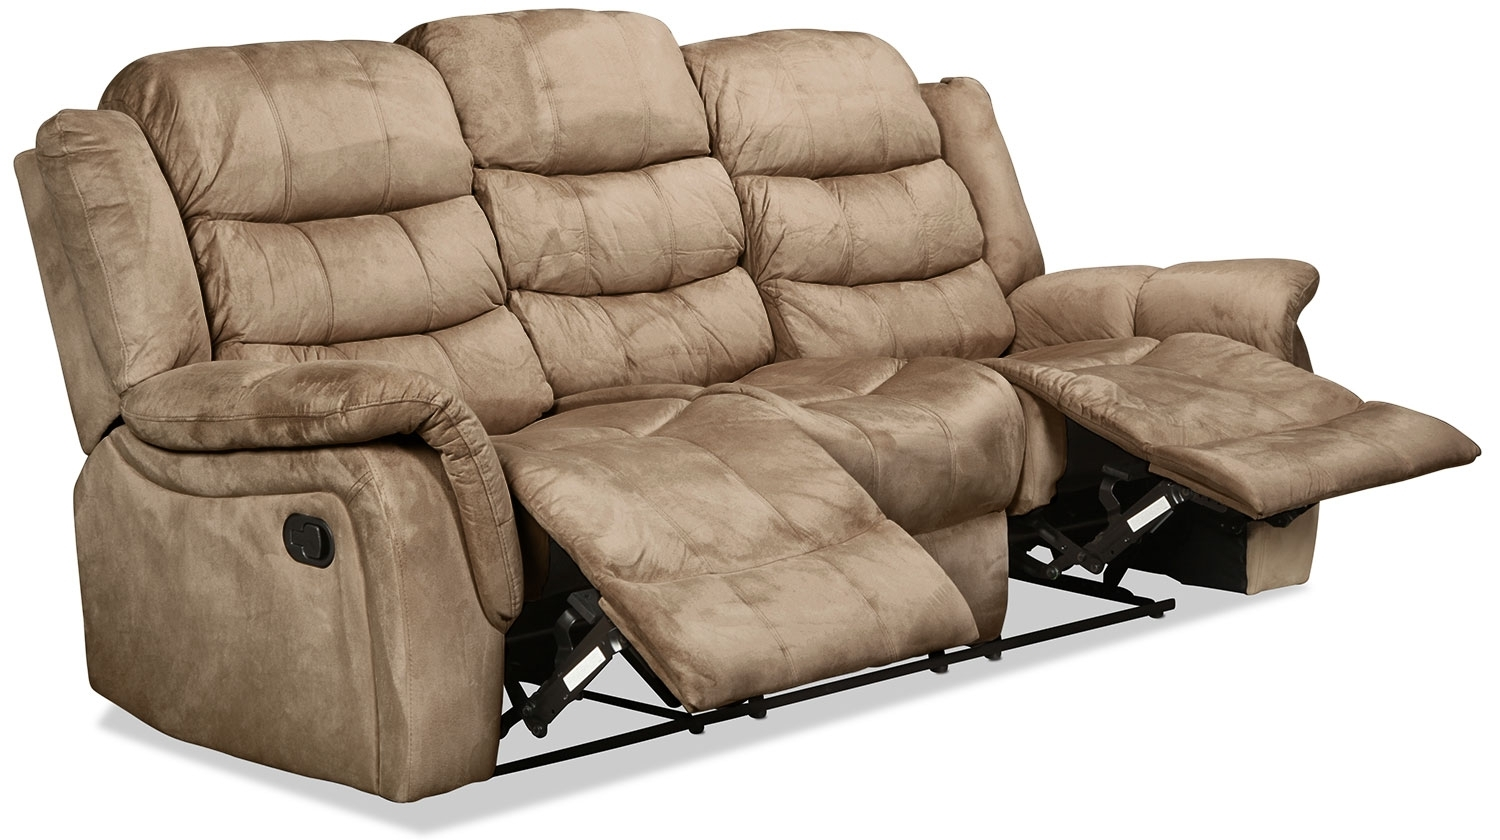 Benton Reclining Sofa - Cobblestone | in Benton 4 Piece Sectionals (Image 5 of 30)